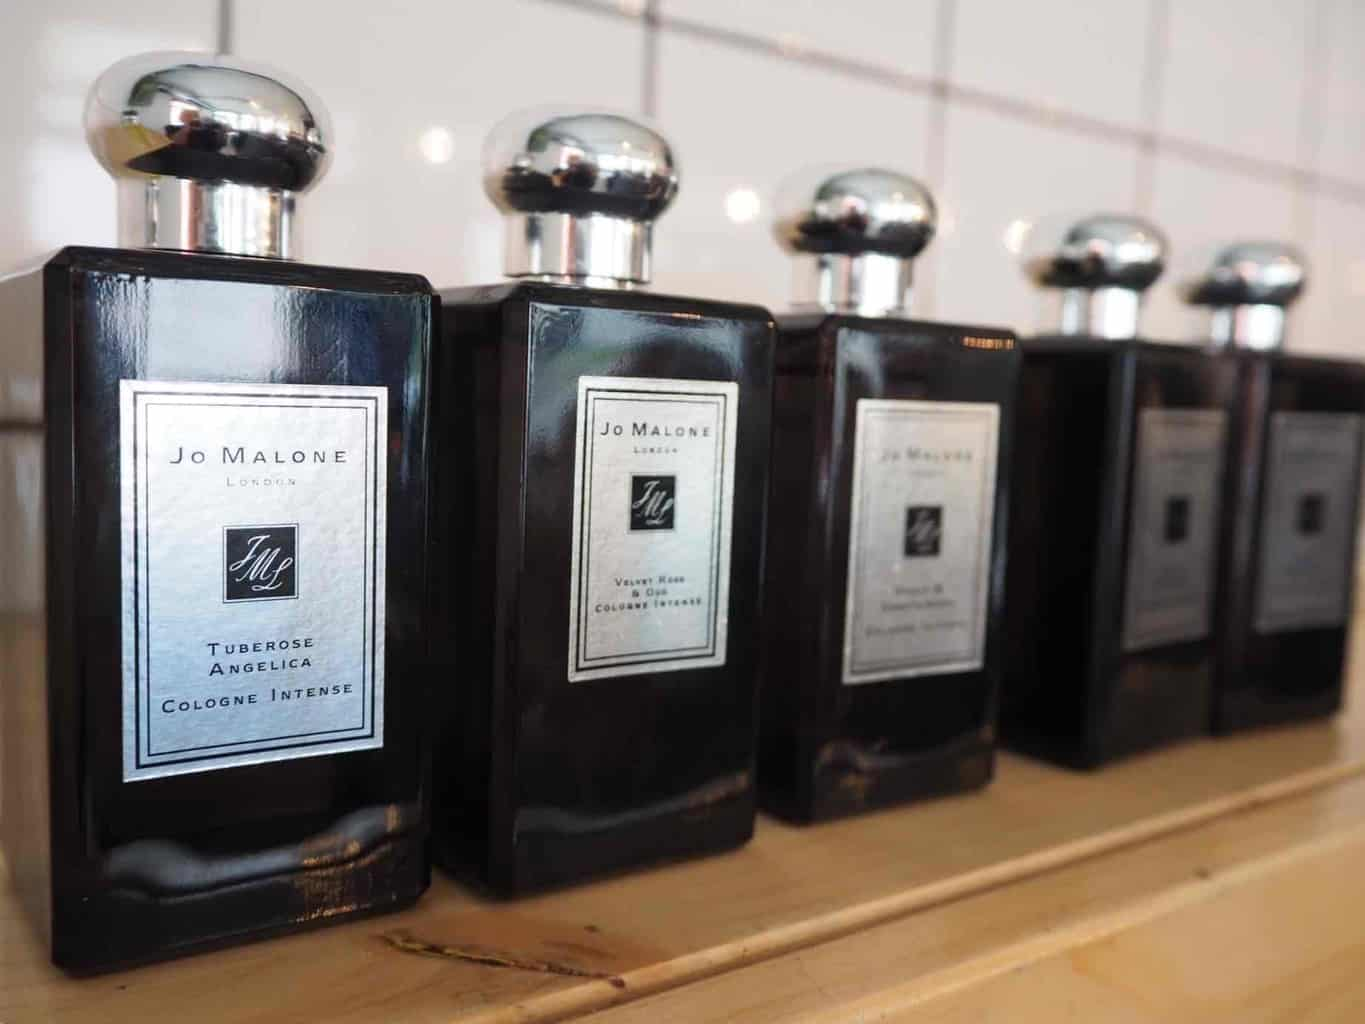 Jo Malone Basil and Neroli at Juicery21 Zurich